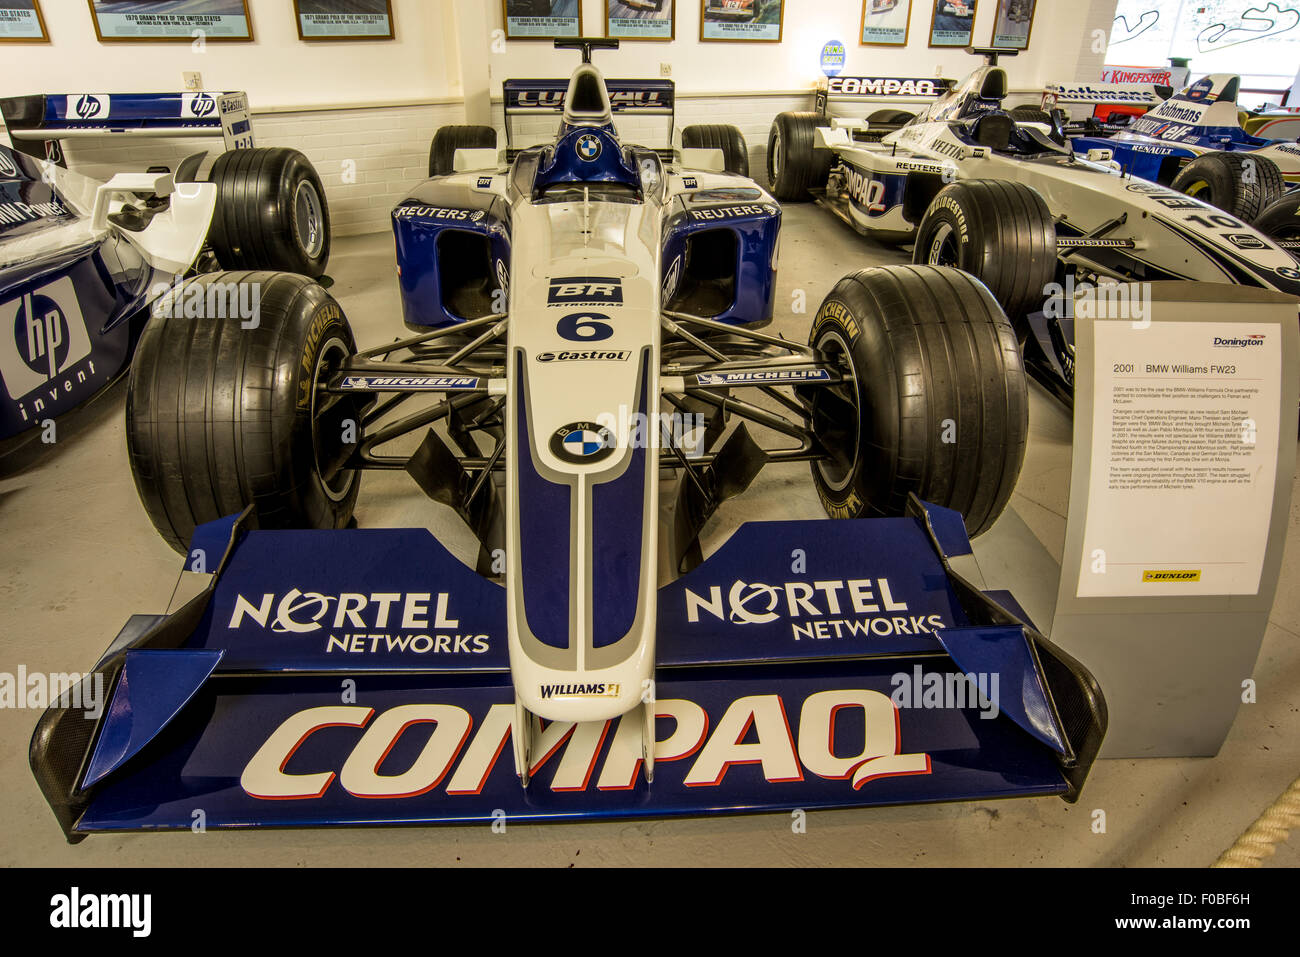 2001 bmw williams fw23 driven by ralf schumacher and juan pablo montoya at the museum of donington raceway leicestershire